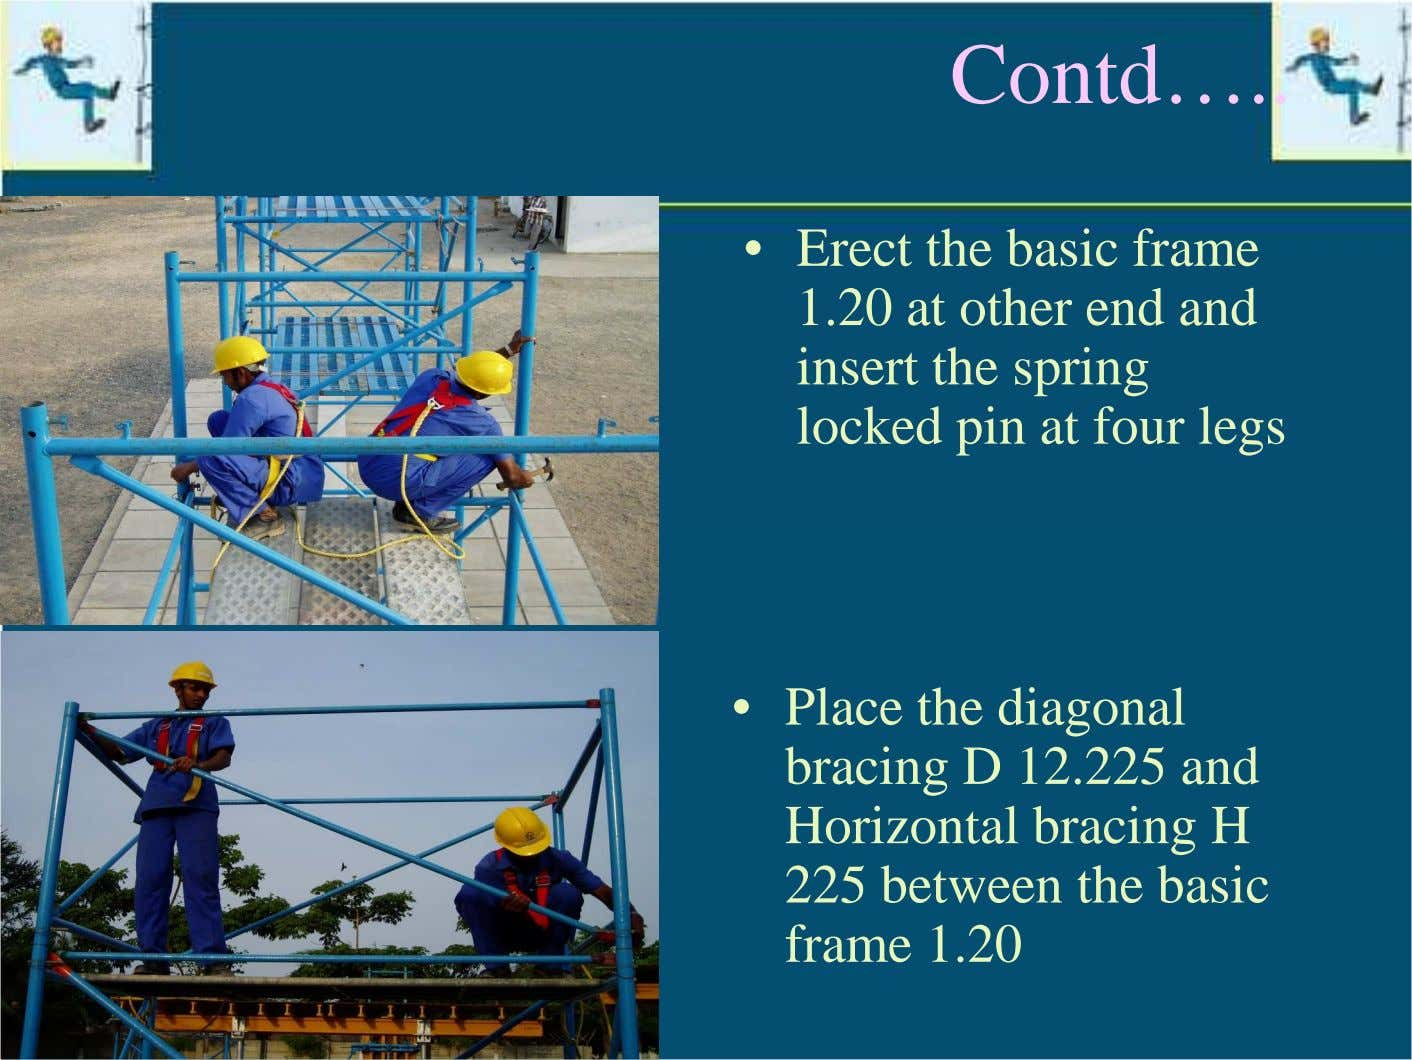 Contd… • Erect the basic frame 1.20 at other end and insert the spring locked